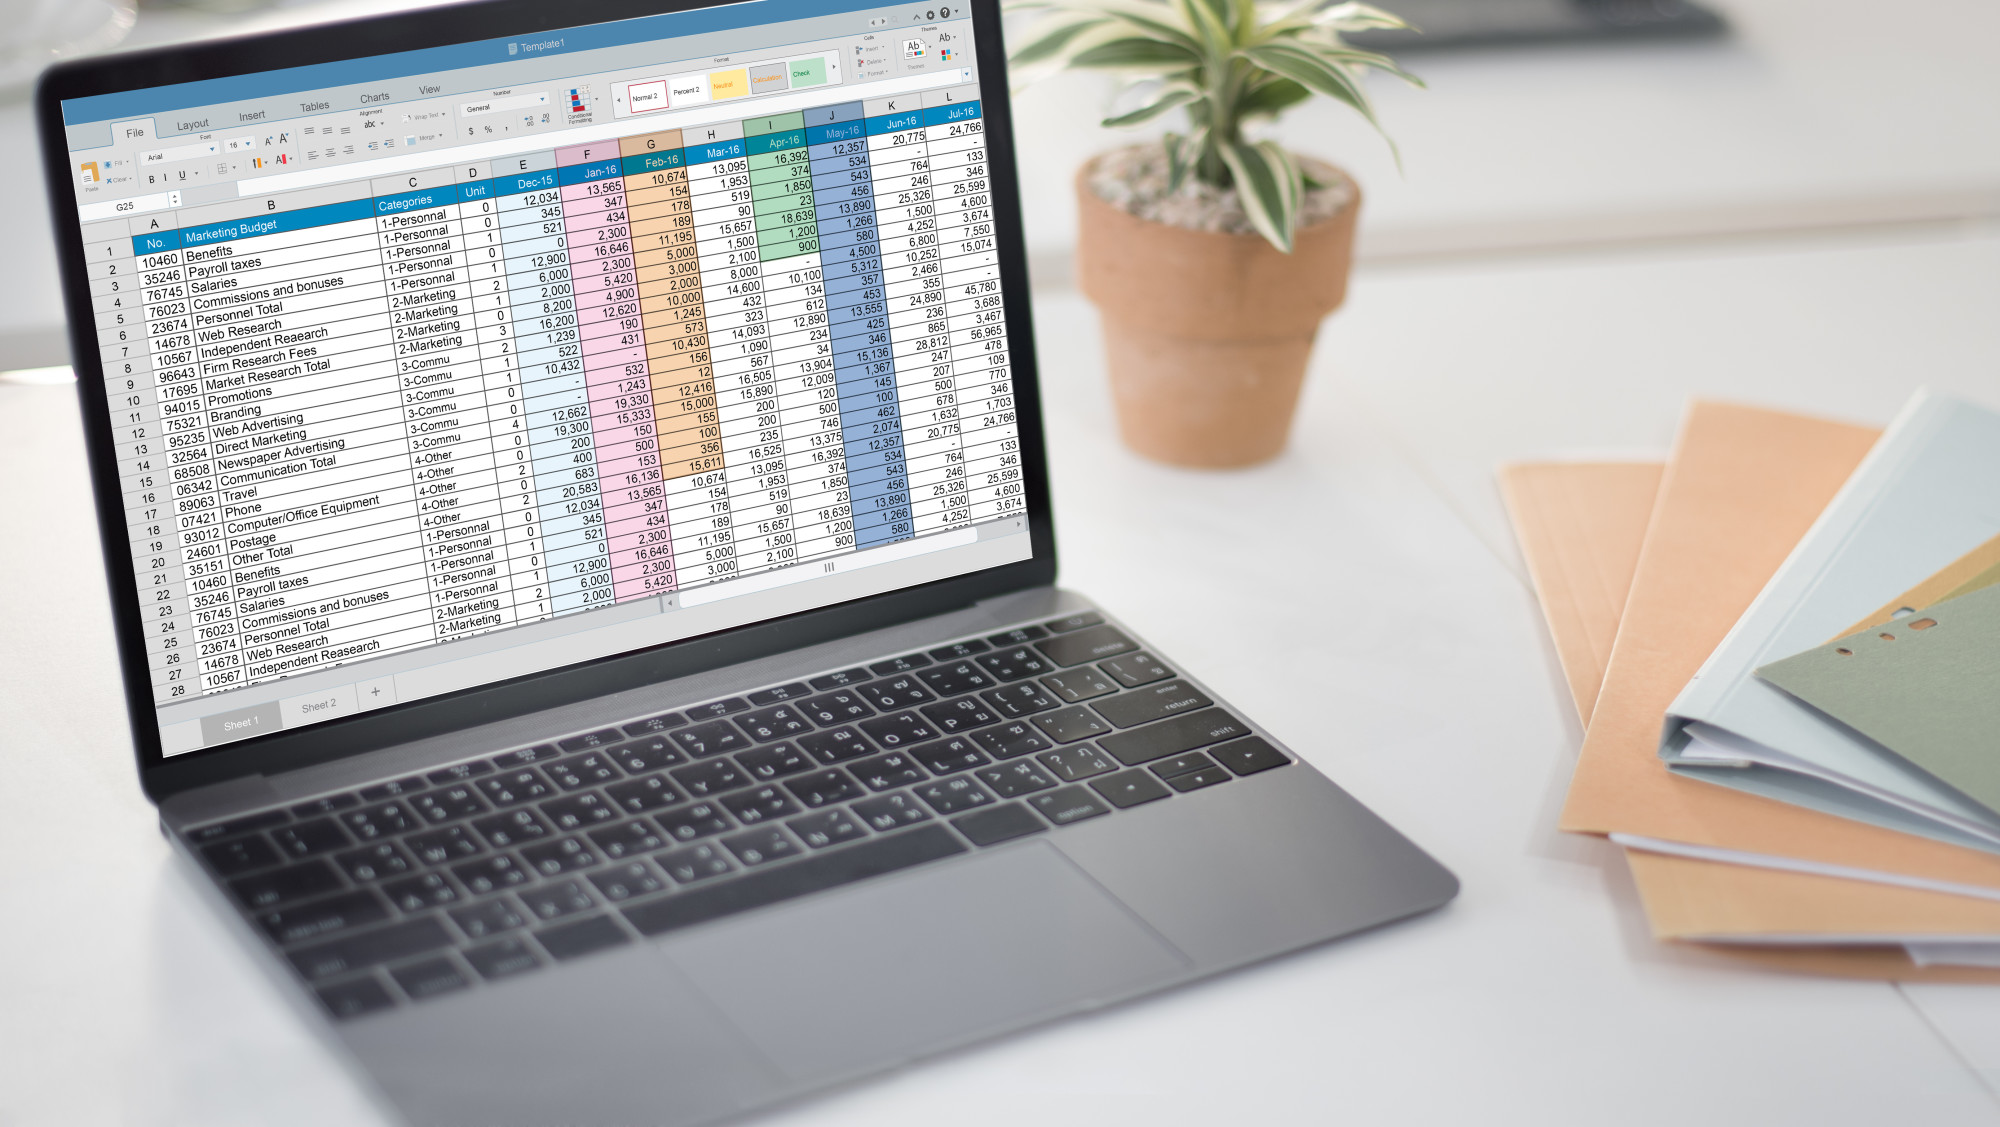 5 Microsoft Excel Hacks That You Need to Know